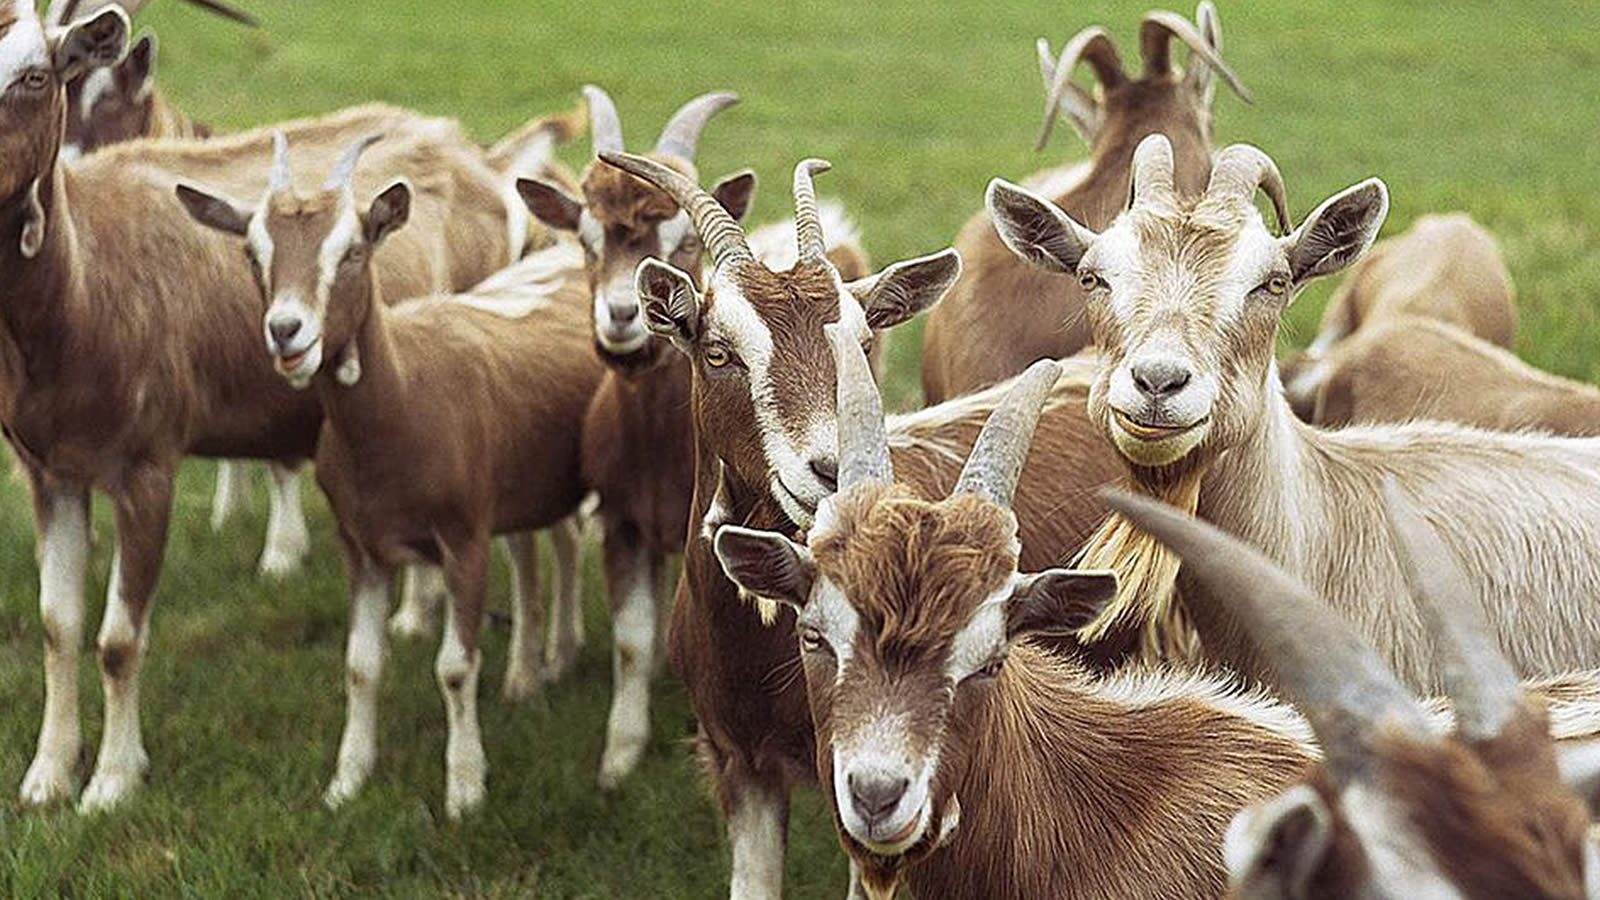 Goat | Welcome to Farm Application